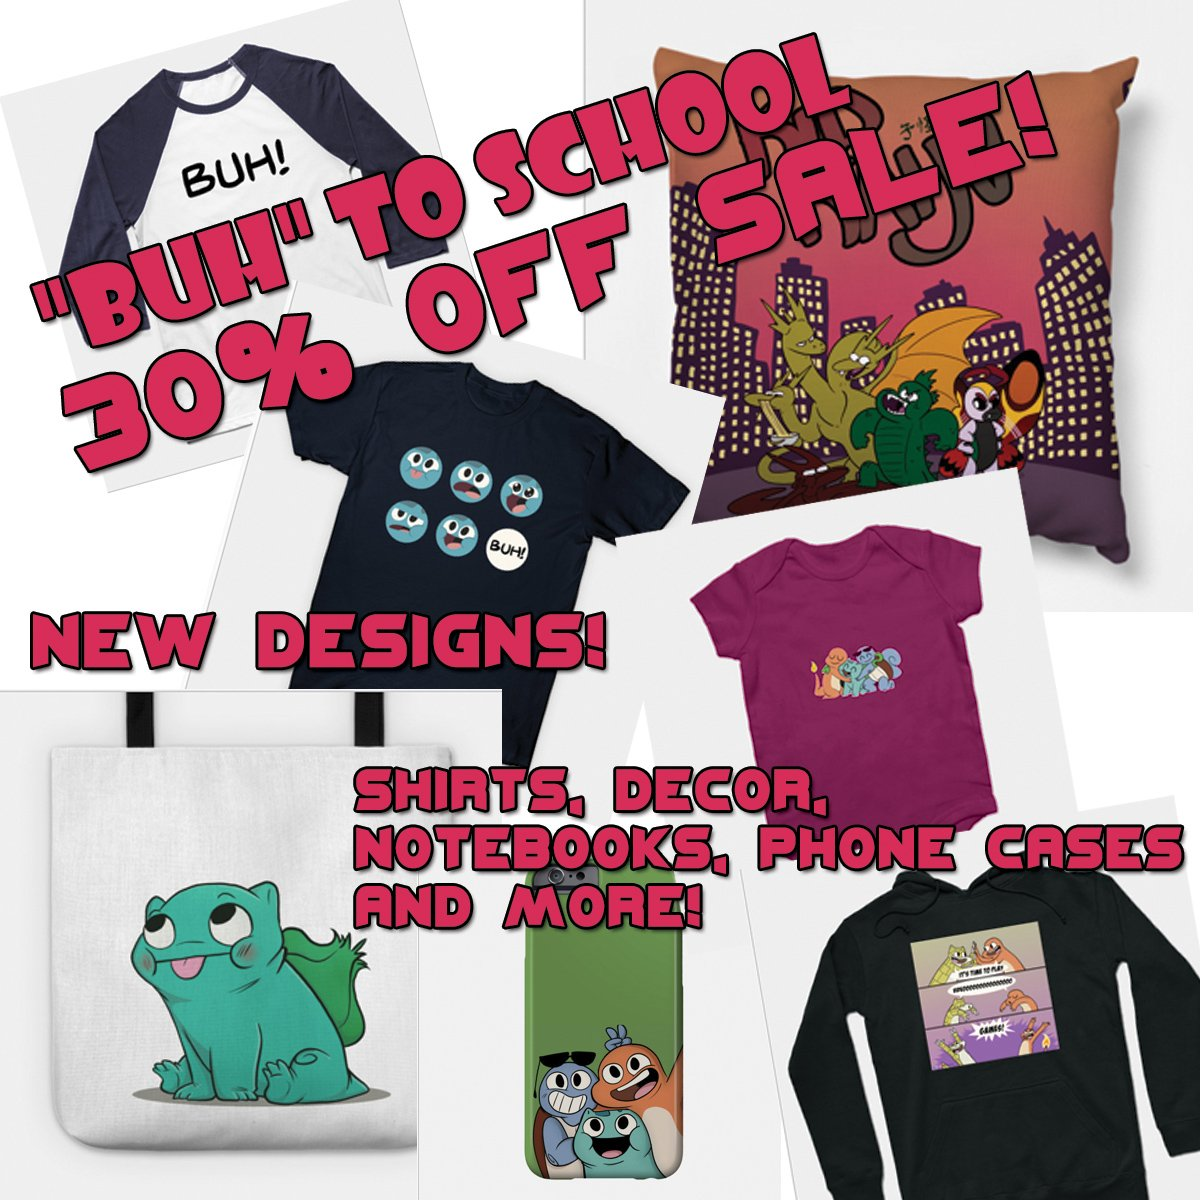 It&#39;s the &#39;BUH&#39; To School sale! Everything on my Teepublic account is up to 30% off! With FIVE new designs!  Get shirts, pillows, phone cases, coffee mugs, laptop protectors, notebooks and more with Li&#39;l Char and the Gang and be THE COOLEST  &gt;   http:// Teepublic.com/user/nekoama  &nbsp;    &lt;<br>http://pic.twitter.com/8GEm0tB42t